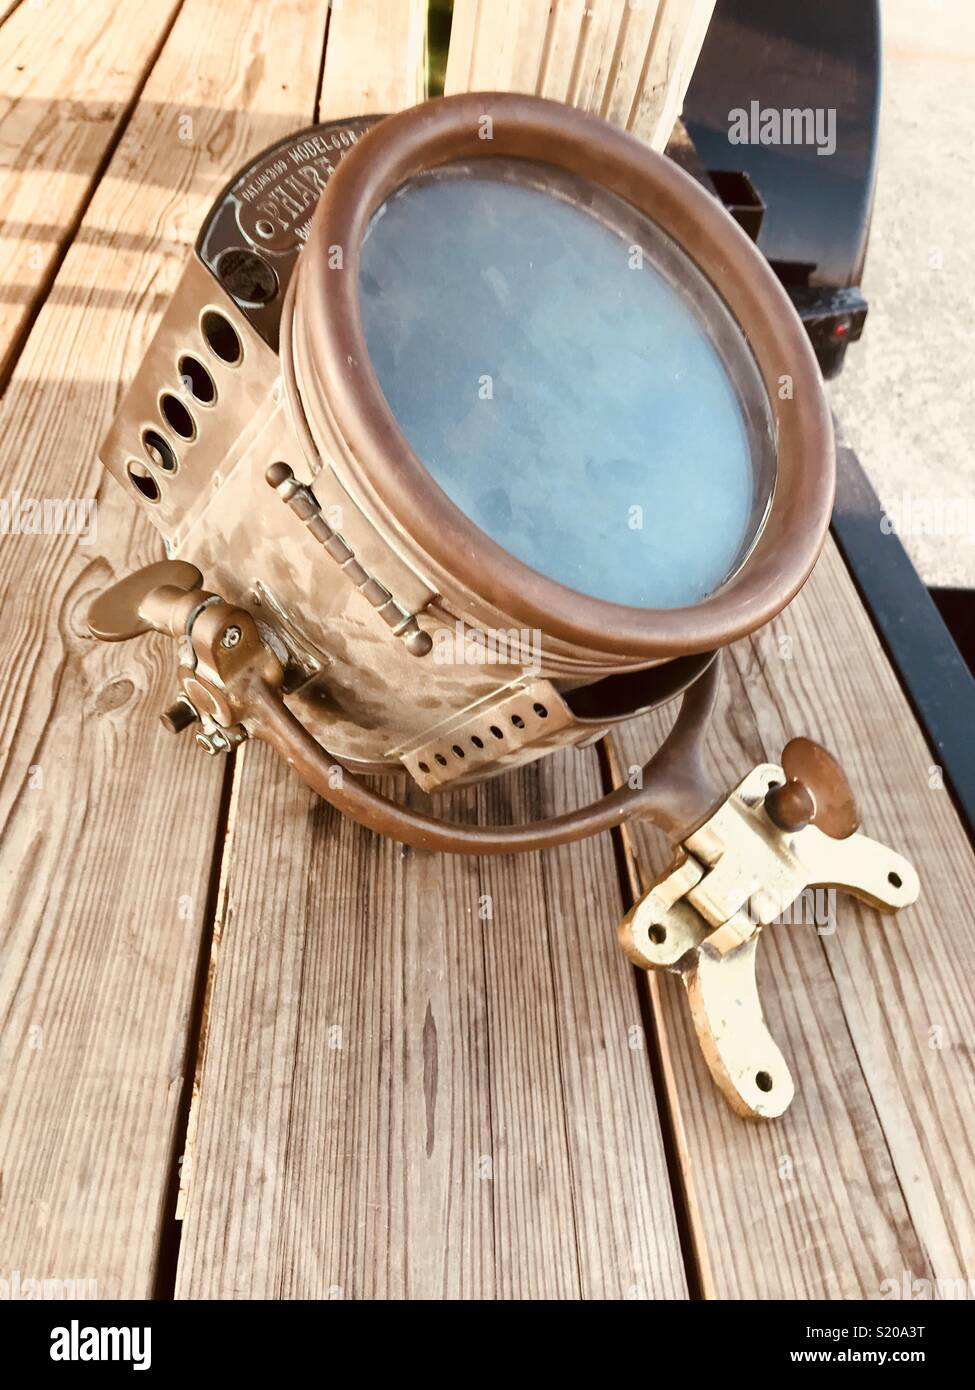 APRIL 14, 2018 - BAKERSFIELD, CA UNITED STATES: Antique horseless carriage headlamp on wood. - Stock Image